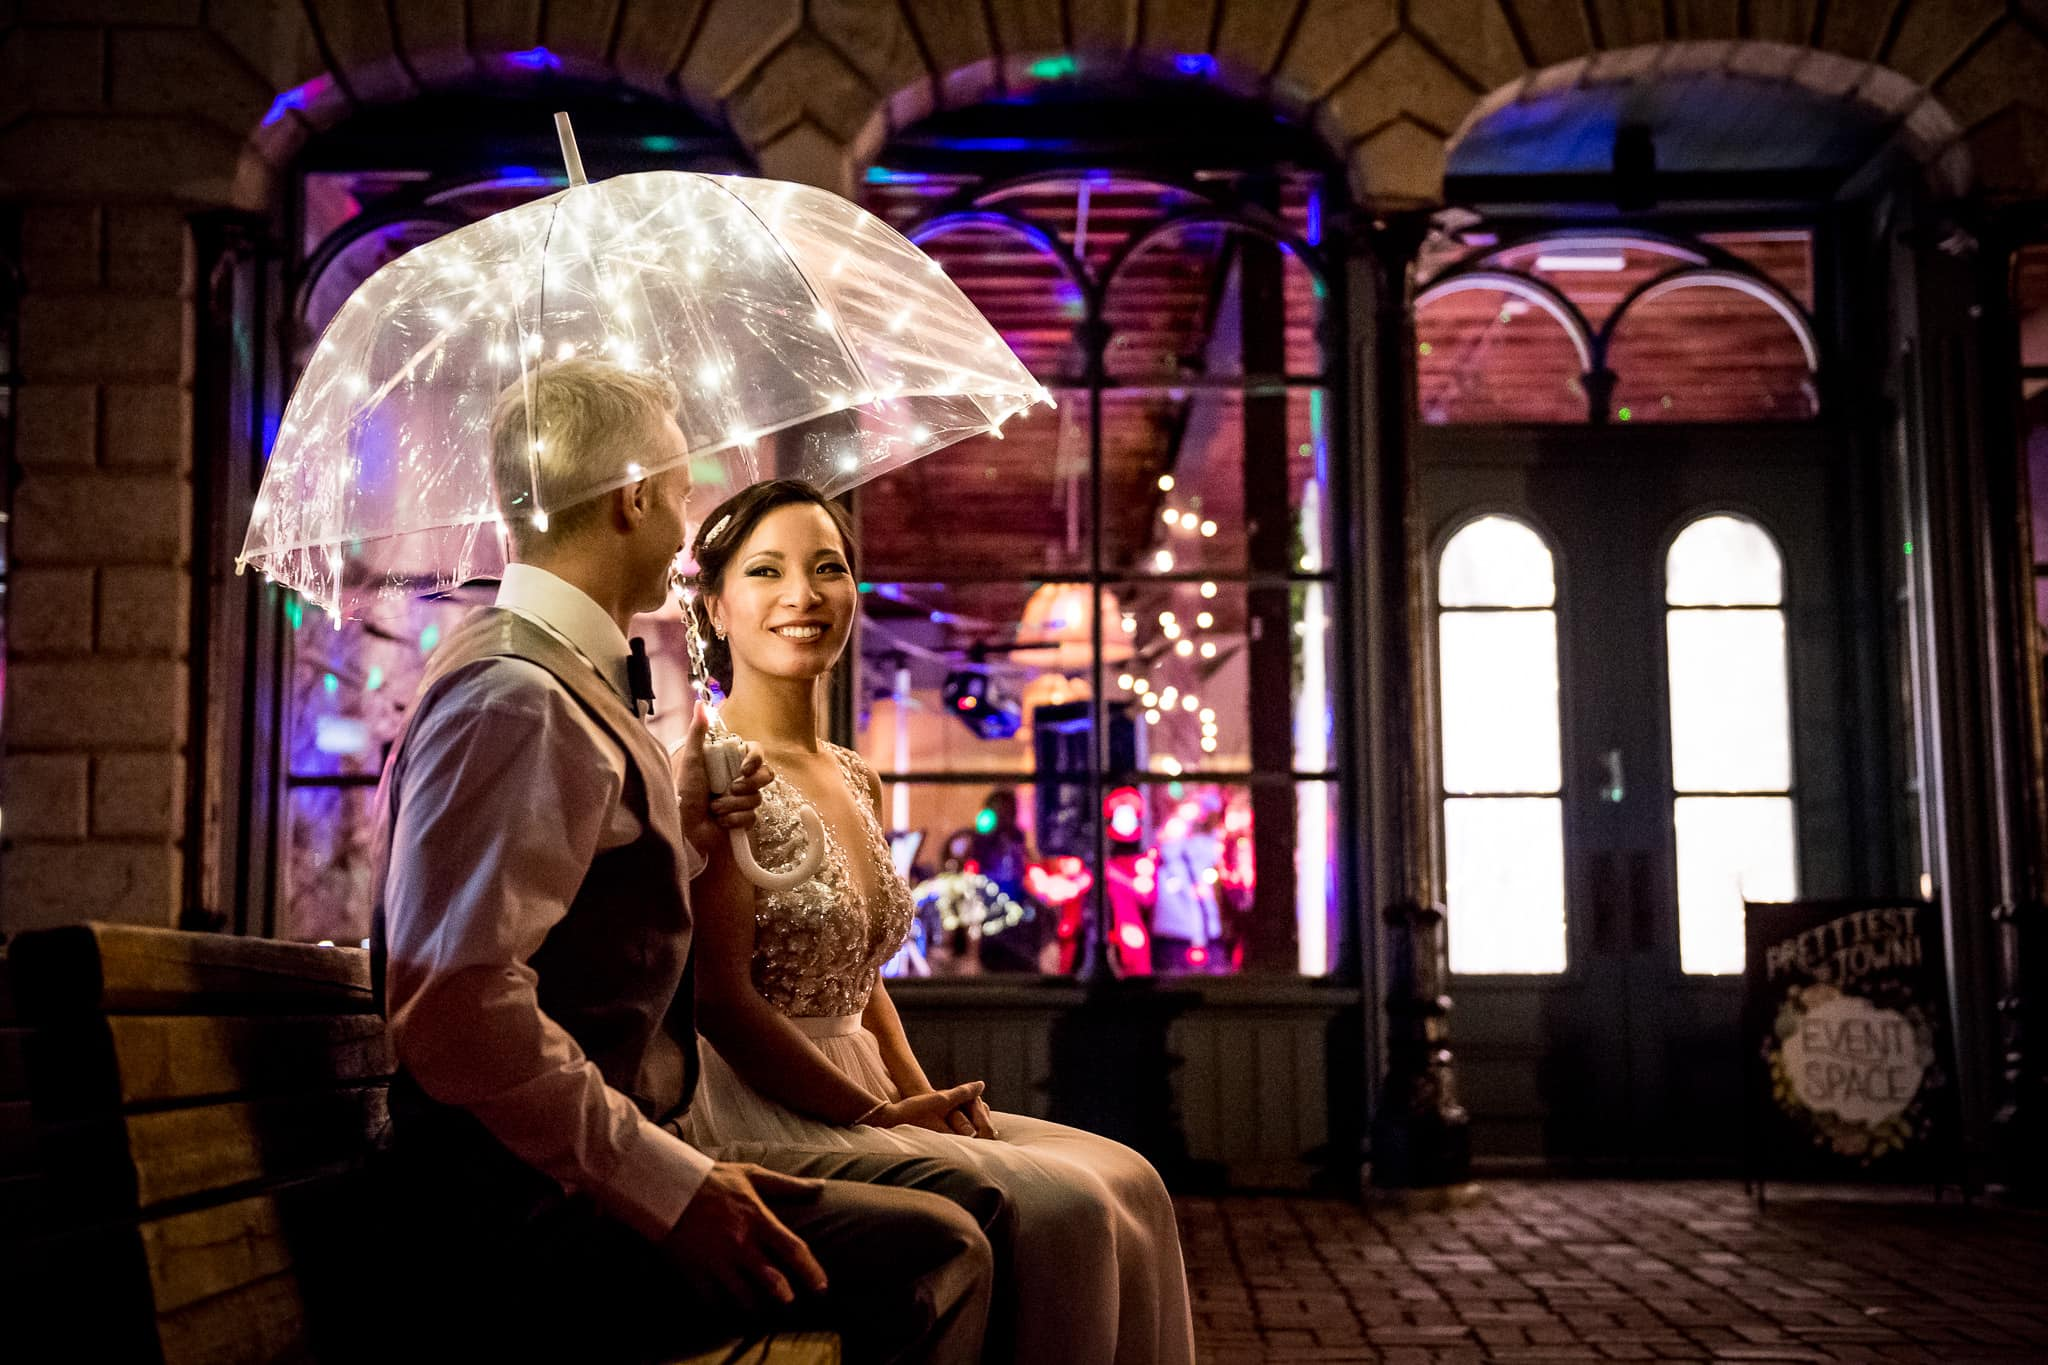 Colorful scene with the Bride and Groom sitting on a bench underneath a lit up umbrella just outside of Aster Cafe on their wedding day with a view of their wedding reception seen thru the large windows behind them